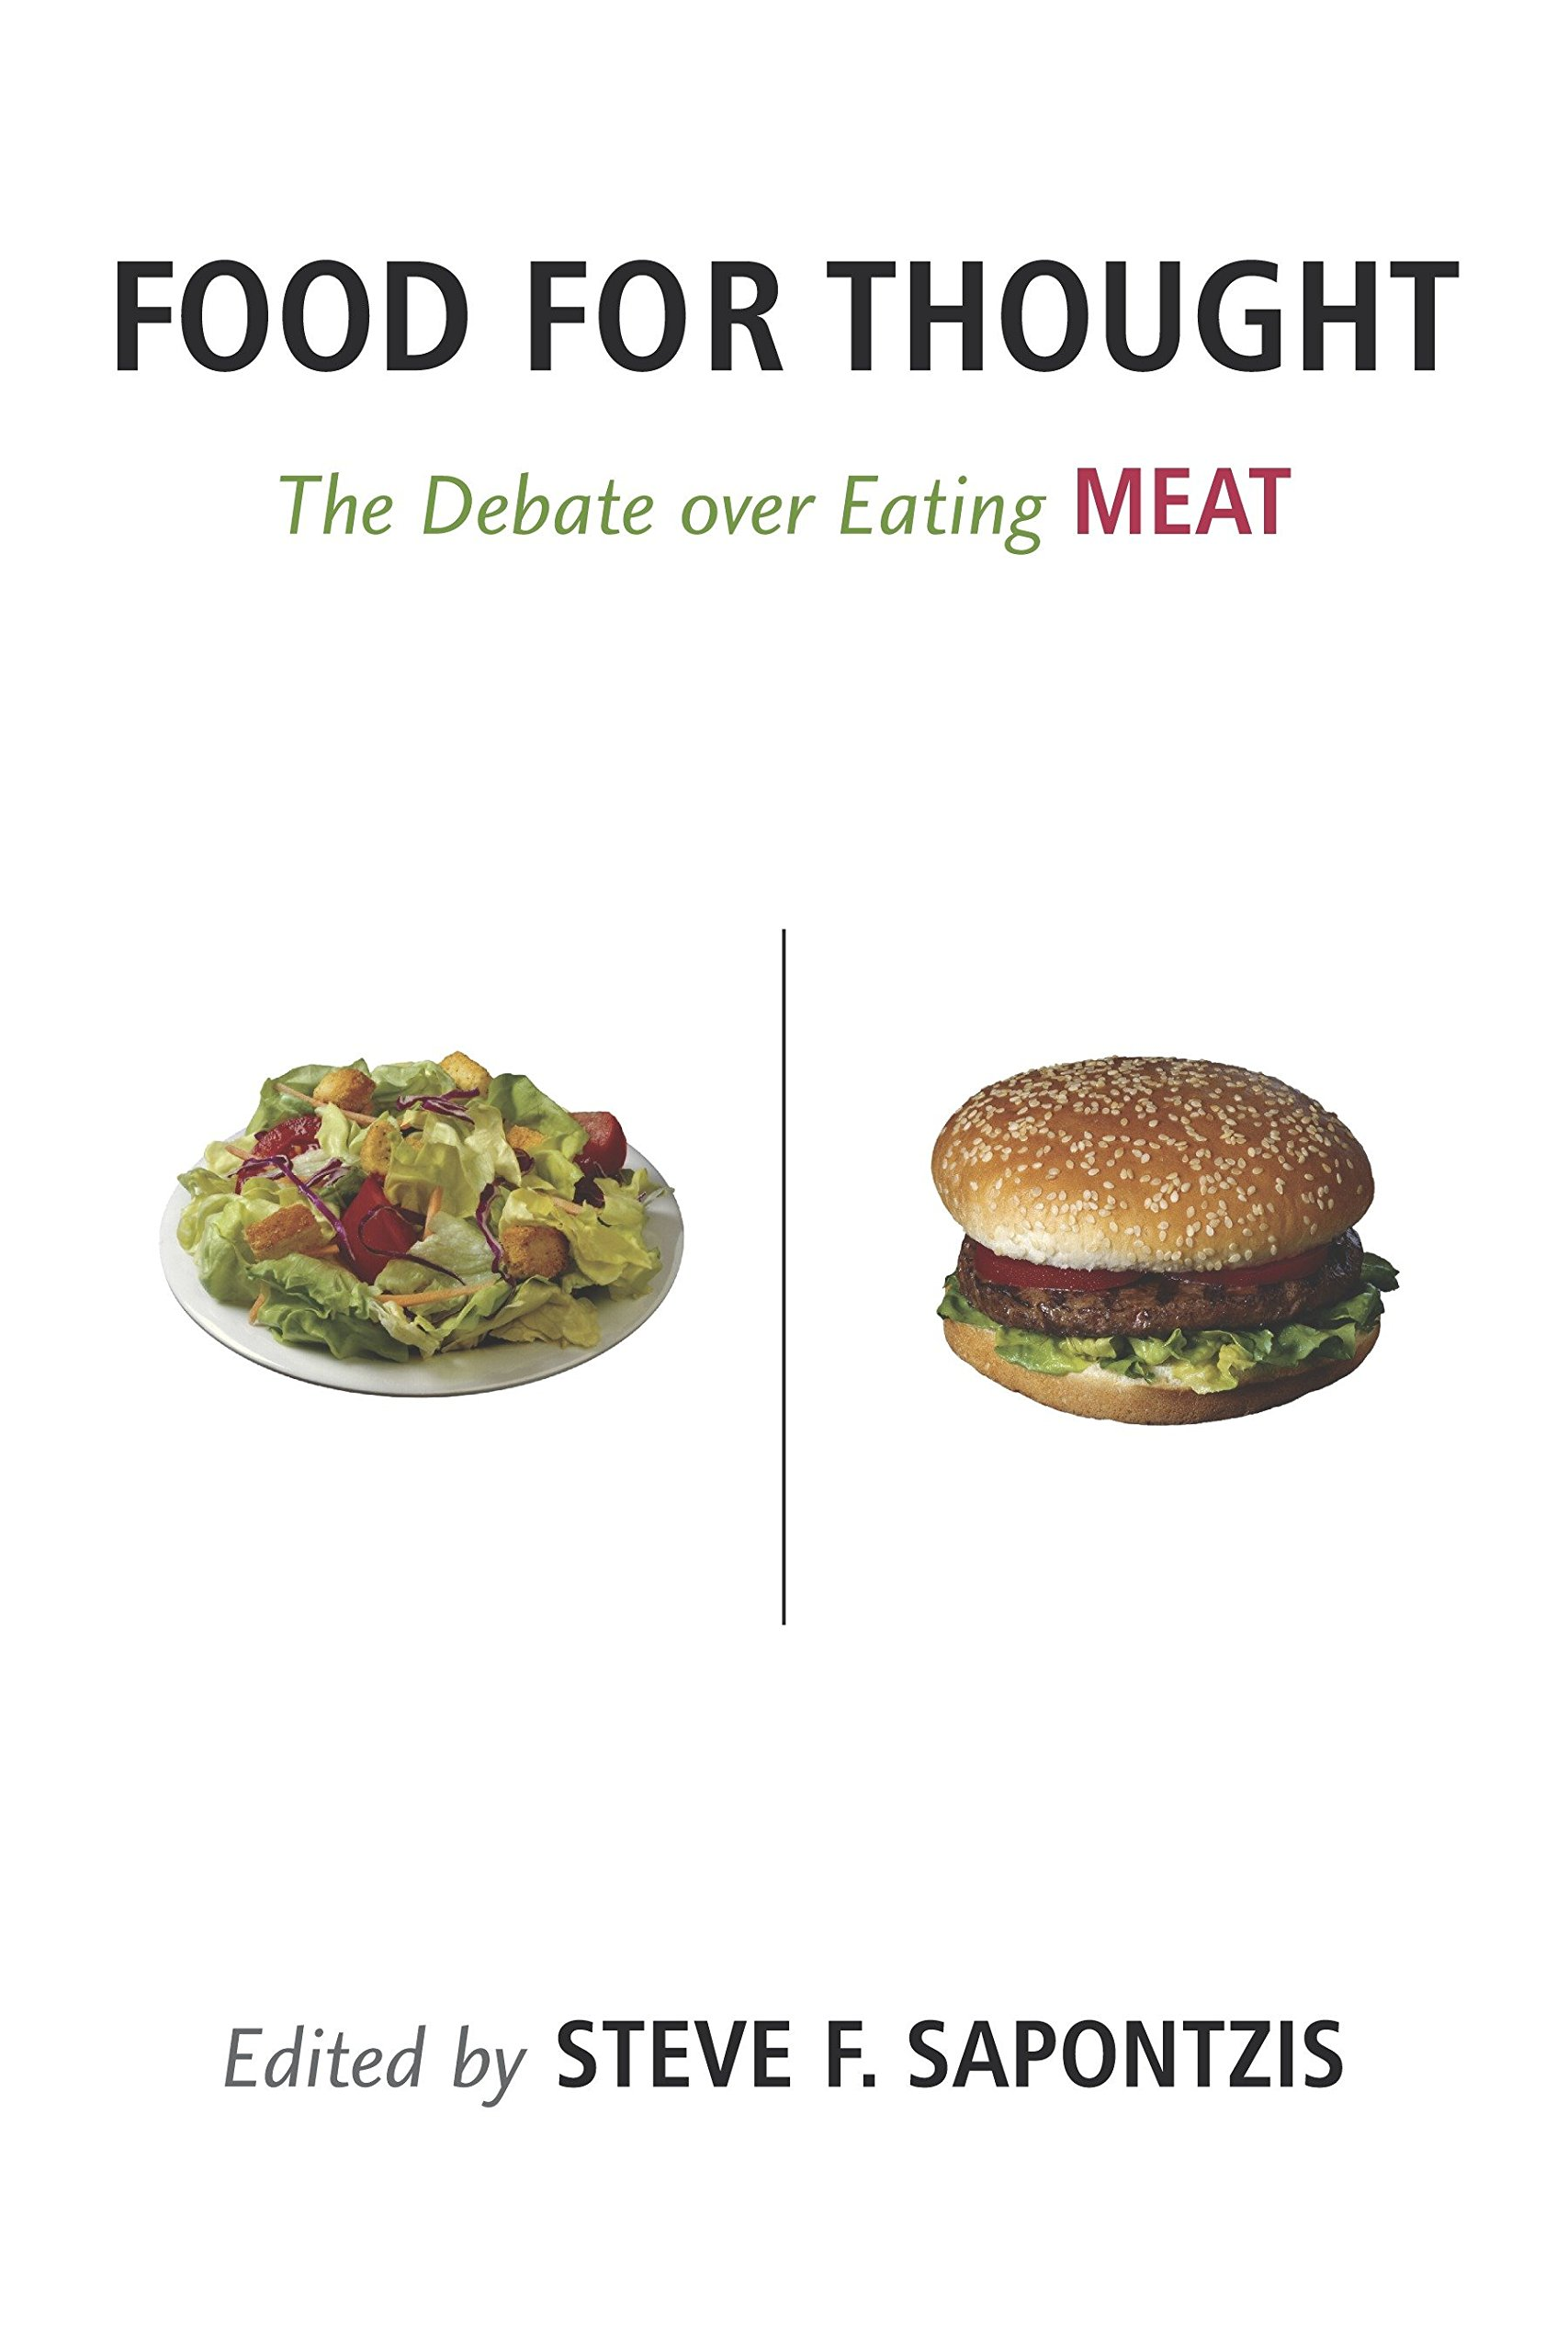 Essays On Health Care Food For Thought The Debate Over Eating Meat Contemporary Issues Steve  F Sapontzis  Amazoncom Books Comparative Essay Thesis Statement also English Example Essay Food For Thought The Debate Over Eating Meat Contemporary Issues  Descriptive Essay Topics For High School Students